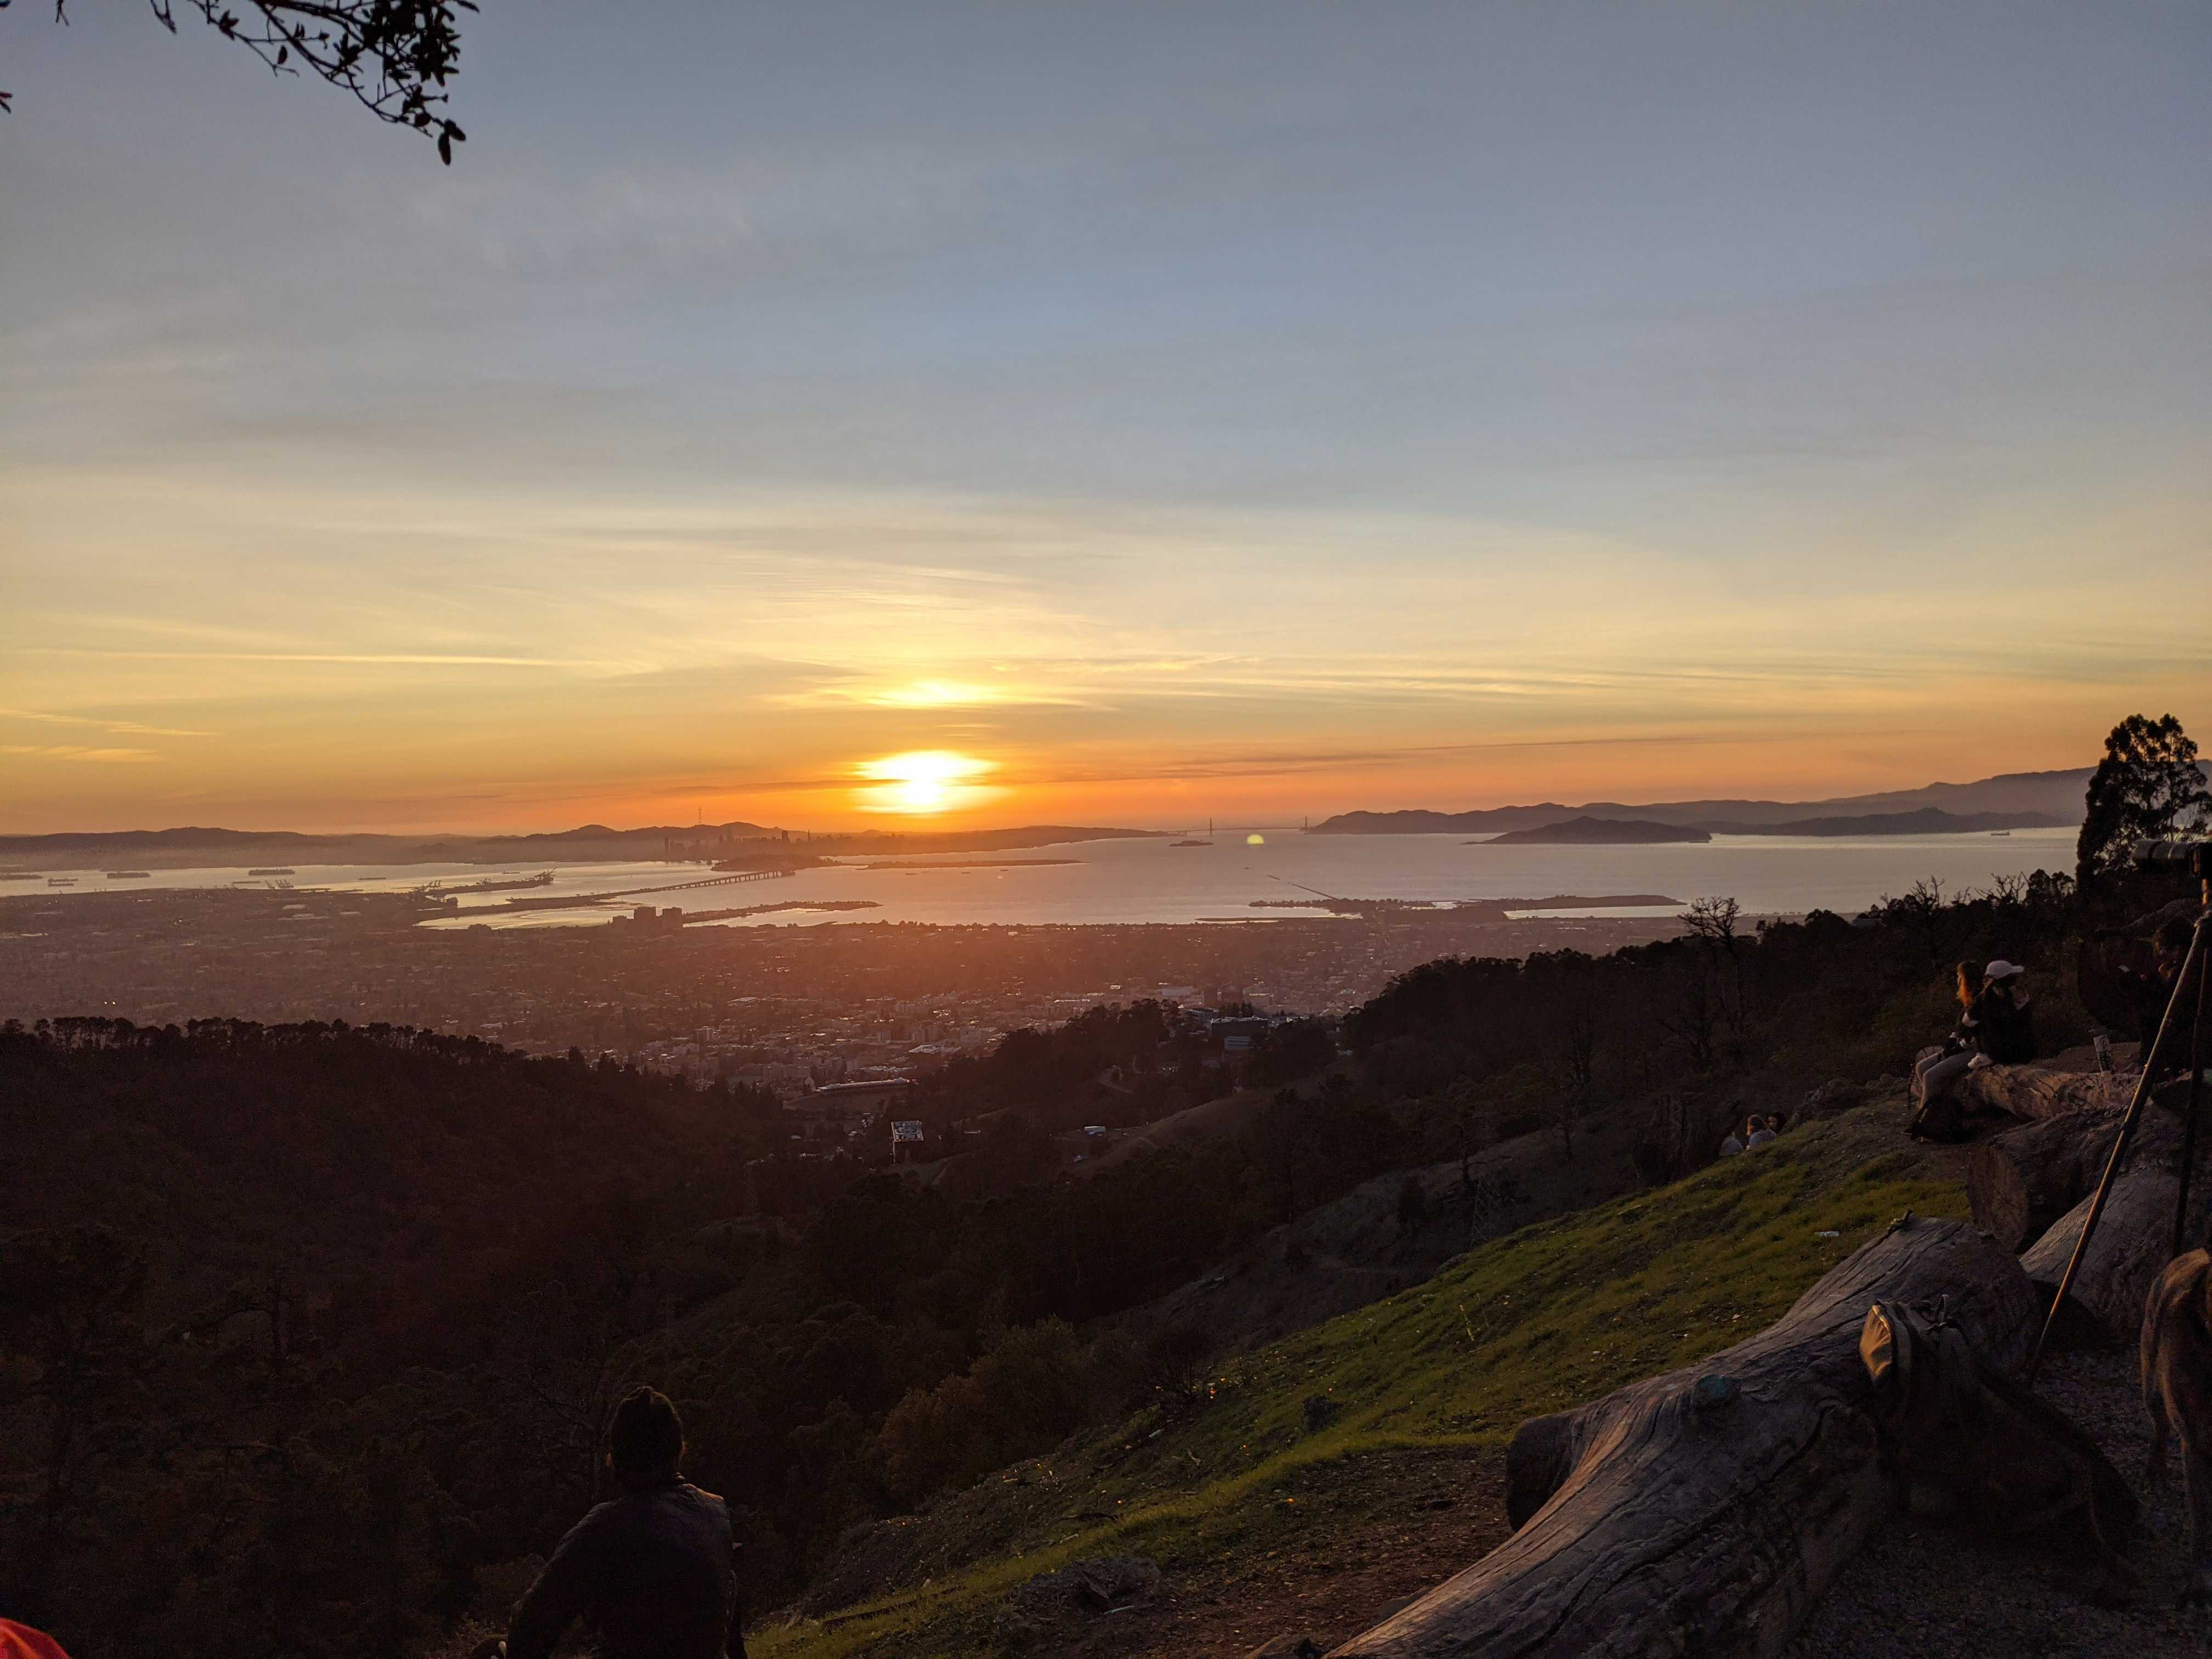 View from my hike in Berkeley (Grizzly Peak)